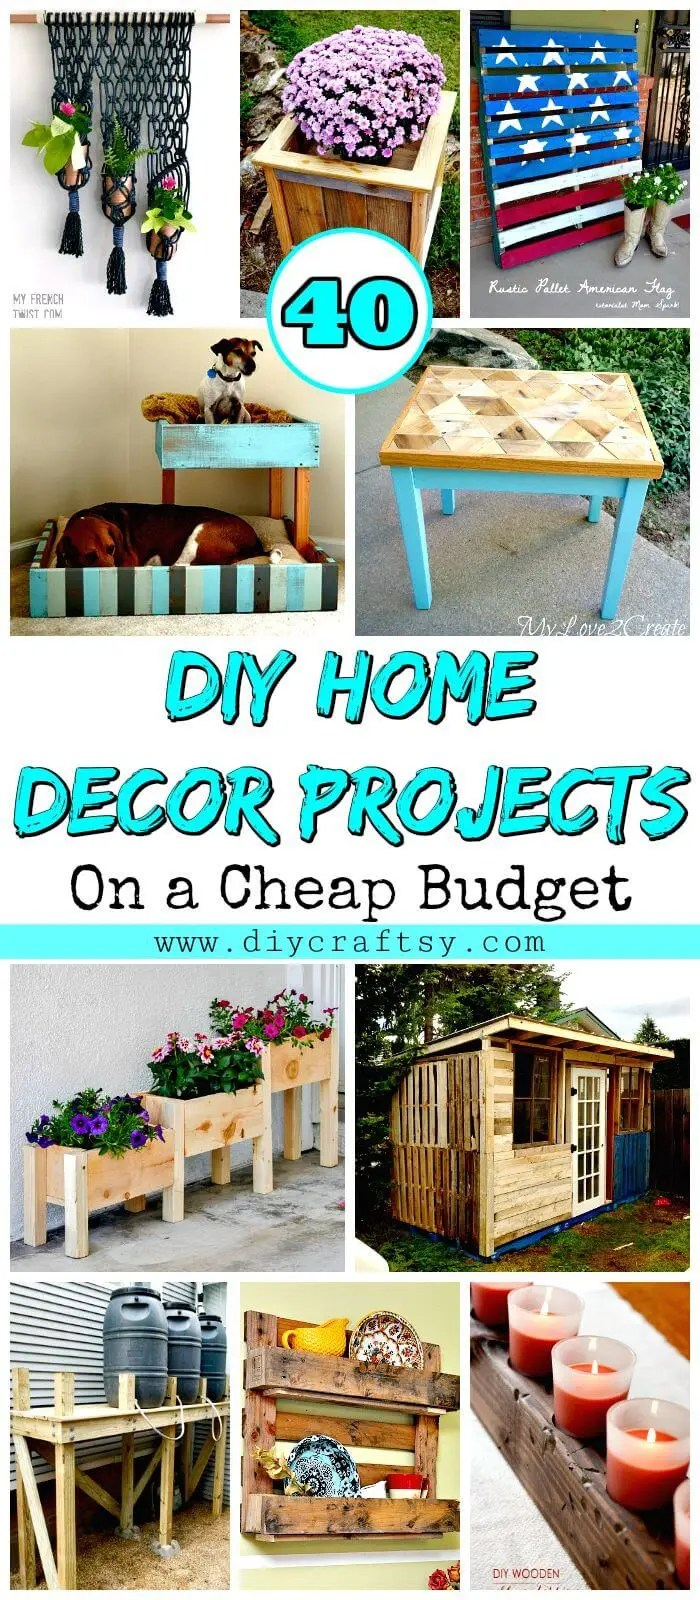 Best 40 Diy Home Decor Projects On A Cheap Budget Diy Crafts This Month